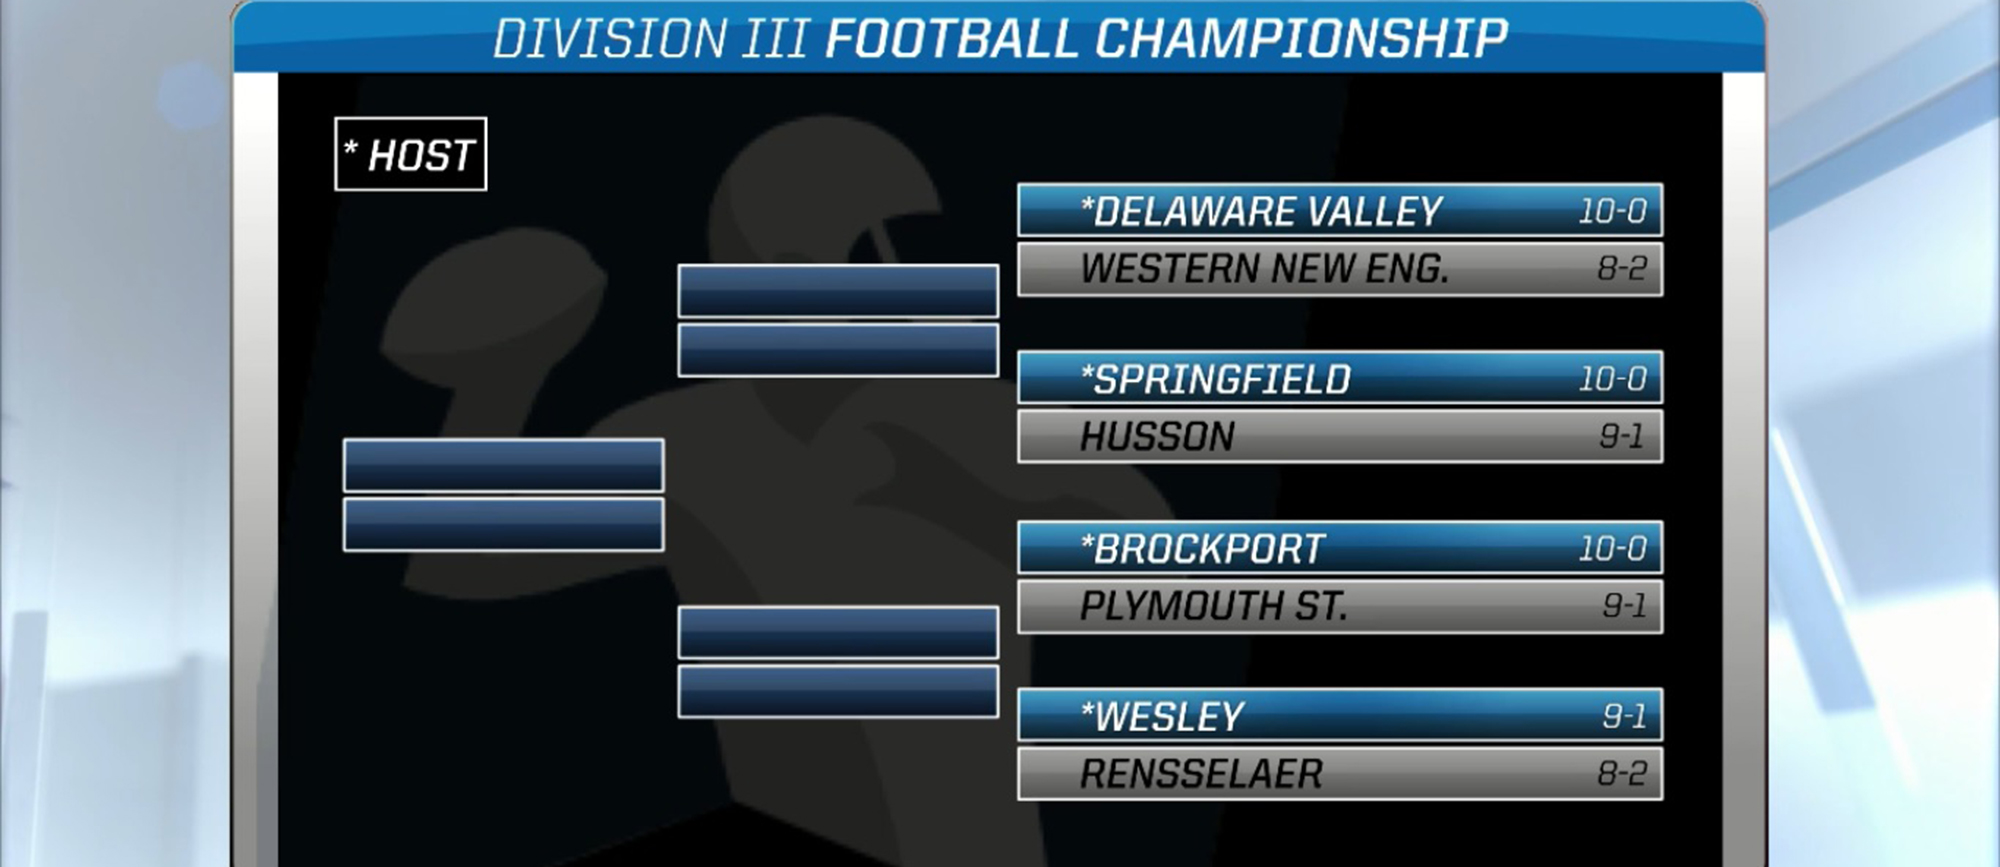 Golden Bears Will Travel to No. 5/7 Delaware Valley for NCAA First Round Contest on Saturday